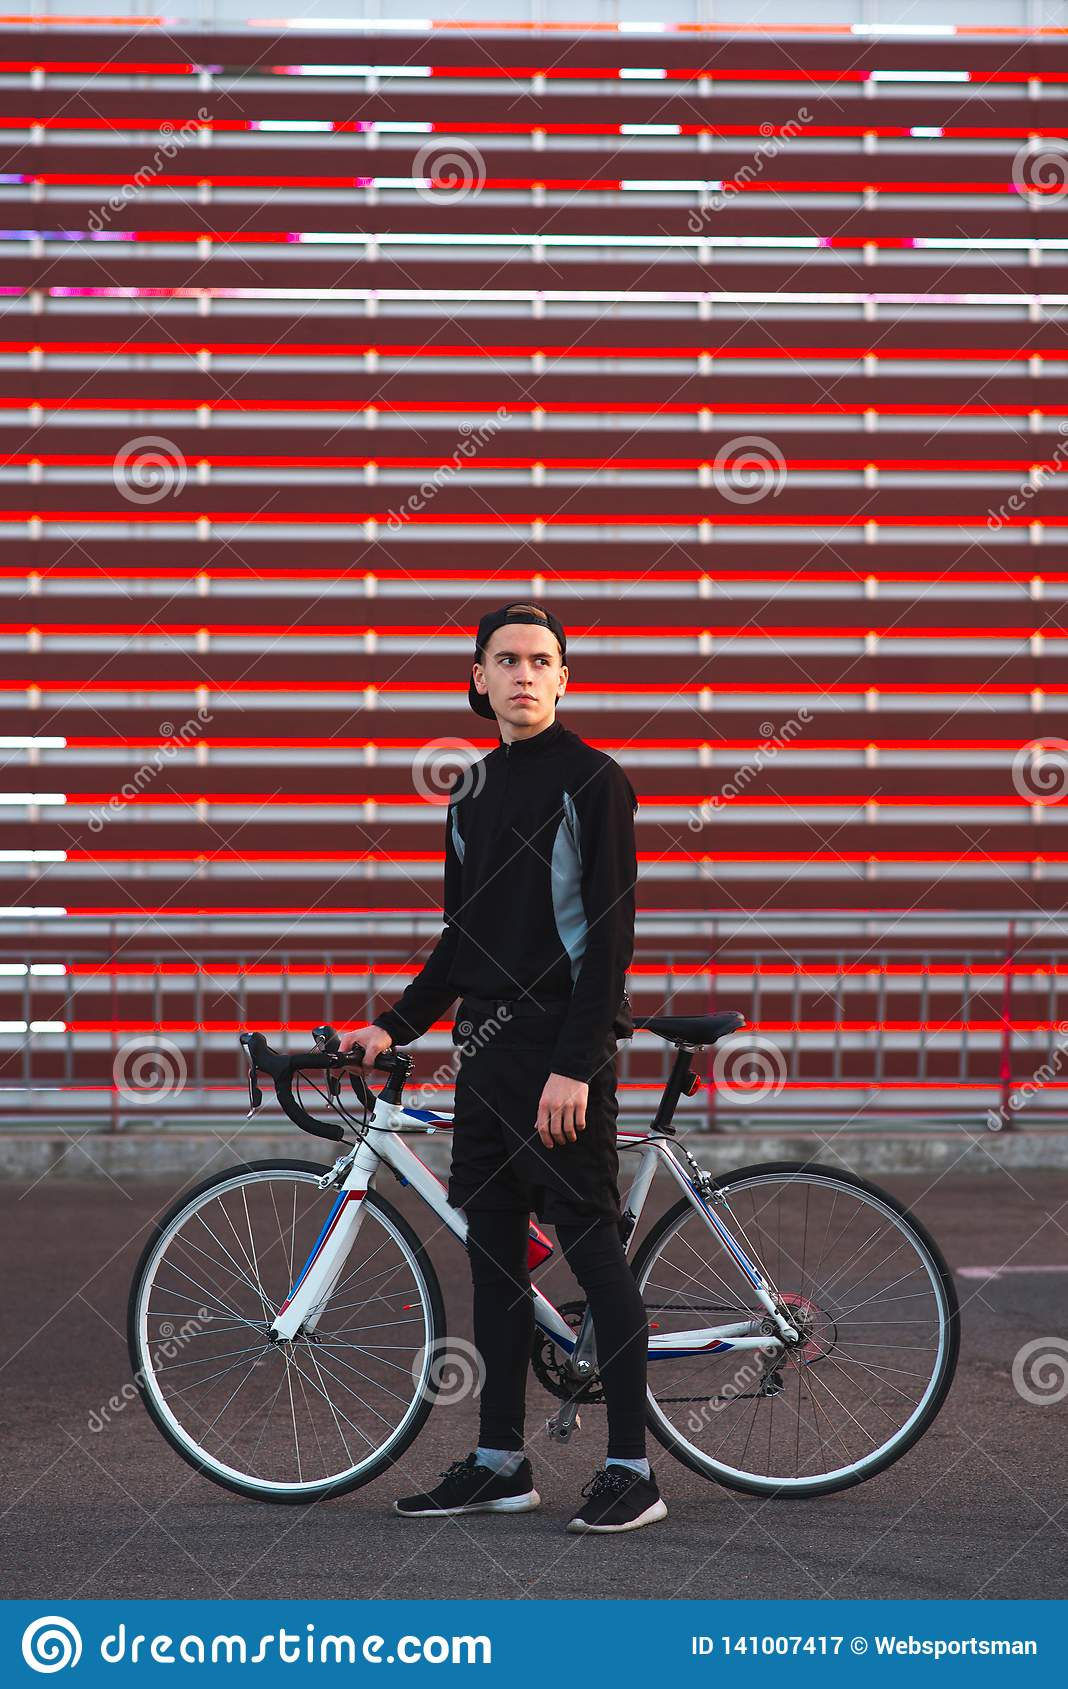 A young man with a bicycle and athletic dress is on an abstract red background